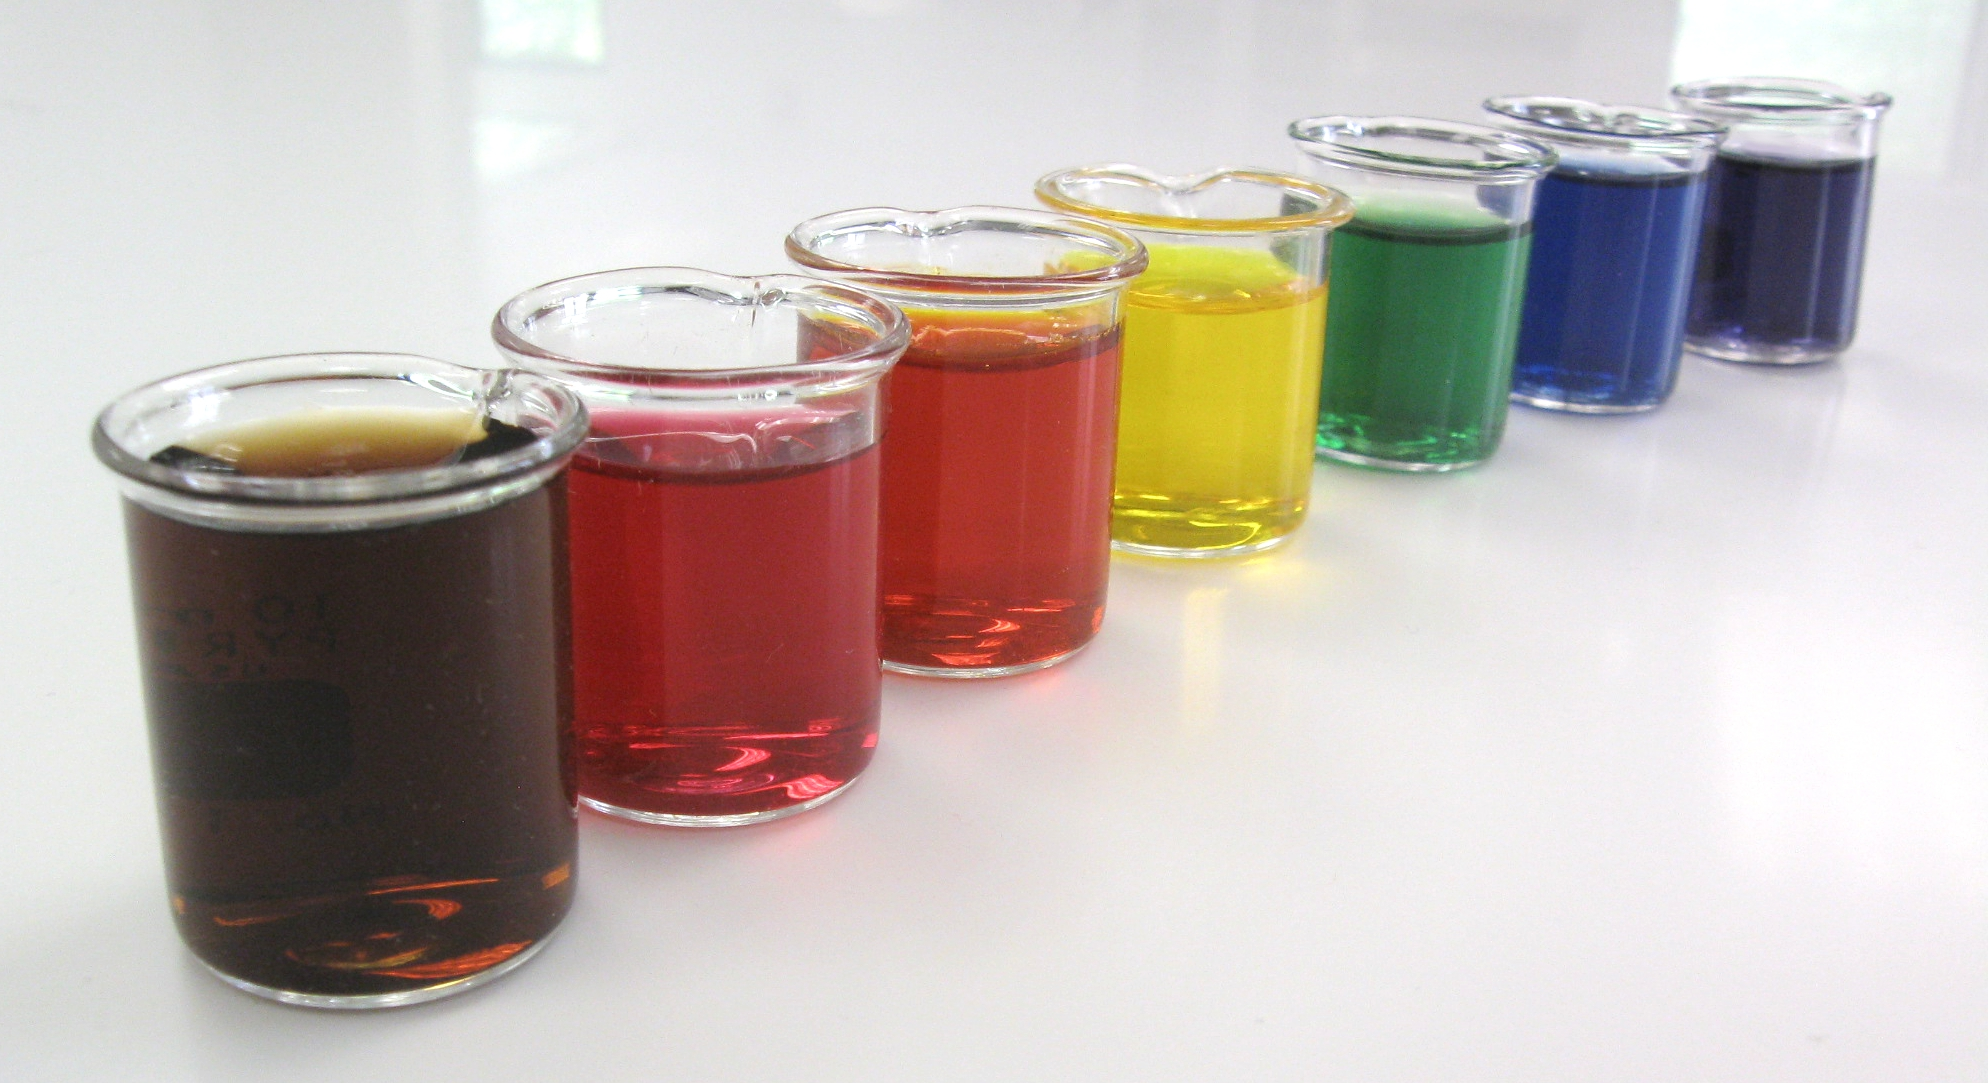 File:Rainbow of food natural food colors.jpg - Wikimedia Commons